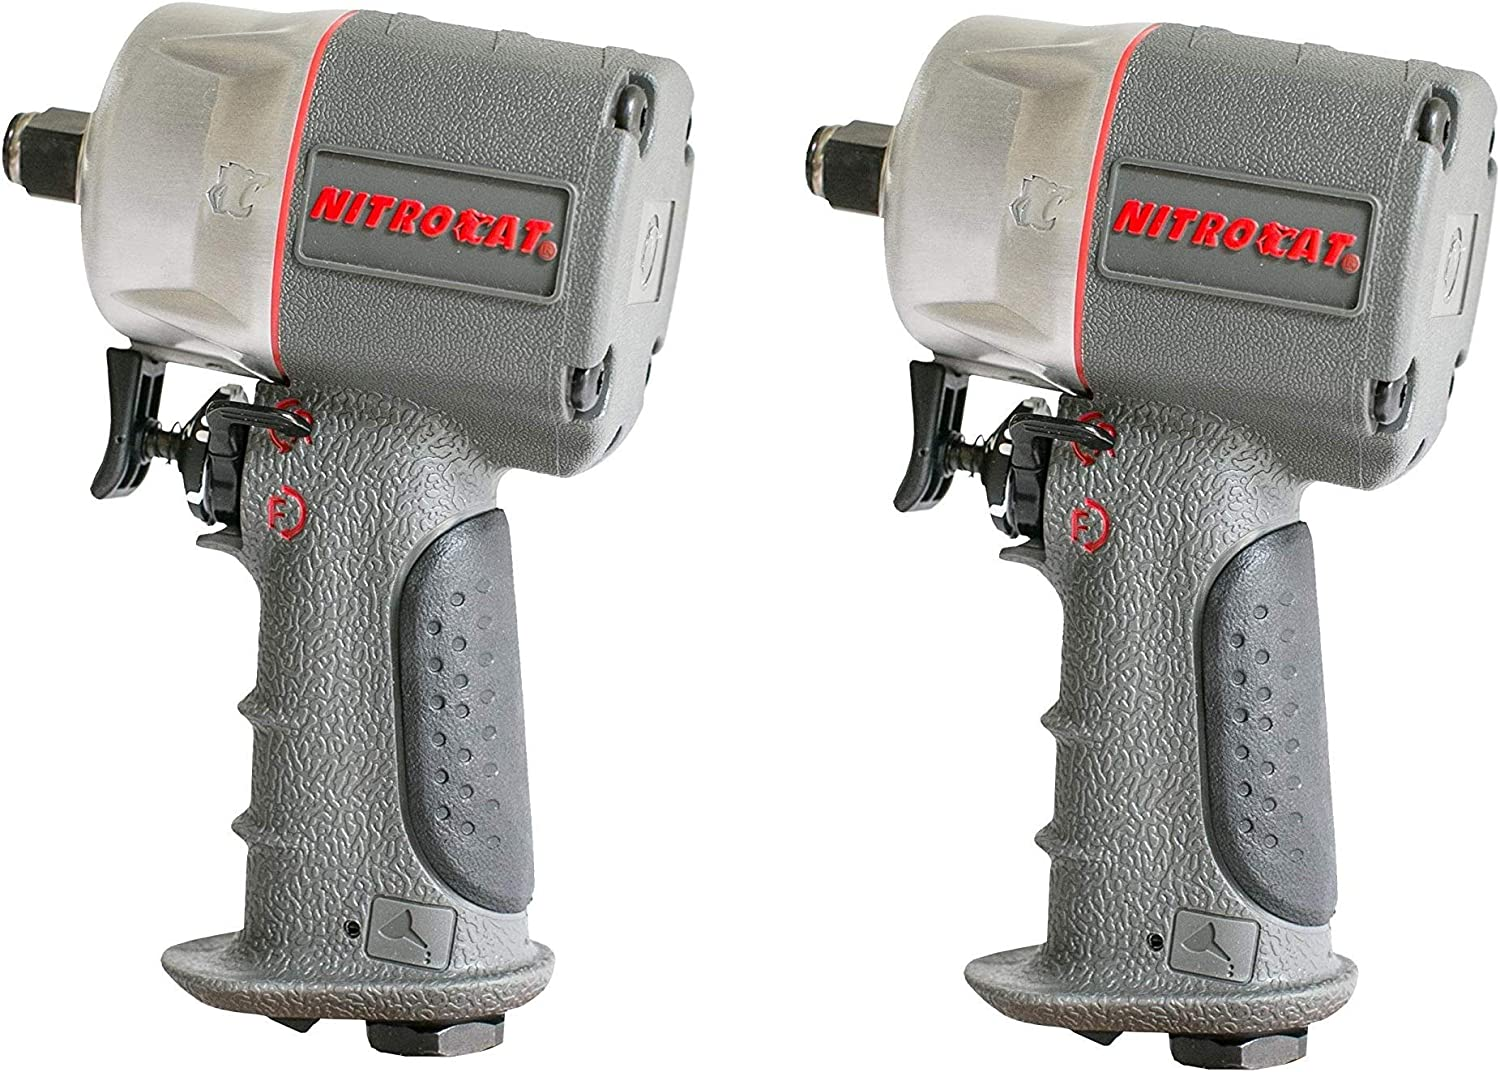 AIRCAT 1056-XL Kevlar Composite Compact Impact Wrench, 1 2 , Silver Grey 2 Pack